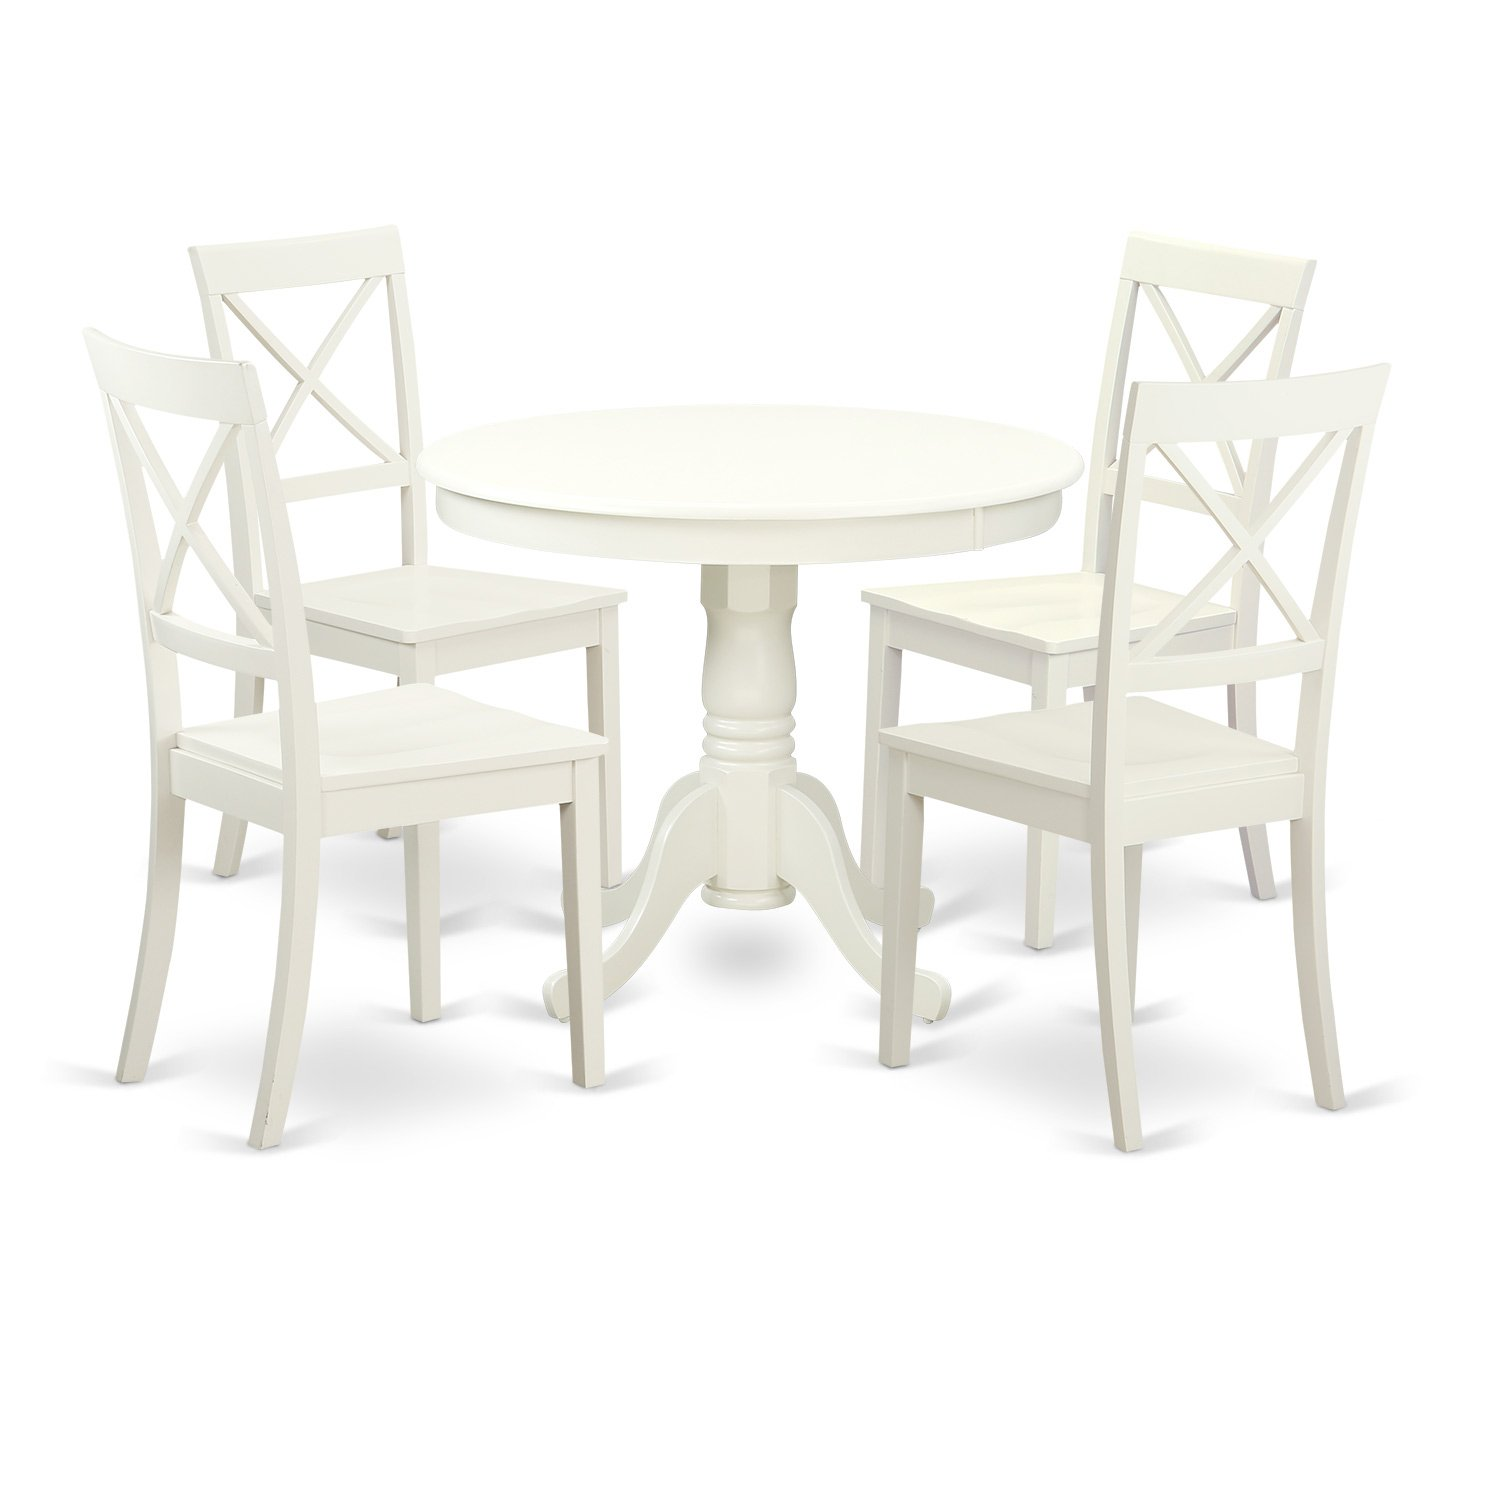 East West Furniture ANBO5-LWH-W 5 PC Set with One Table & Four Wood Seat Dinette Chairs Having A Beautiful Linen White